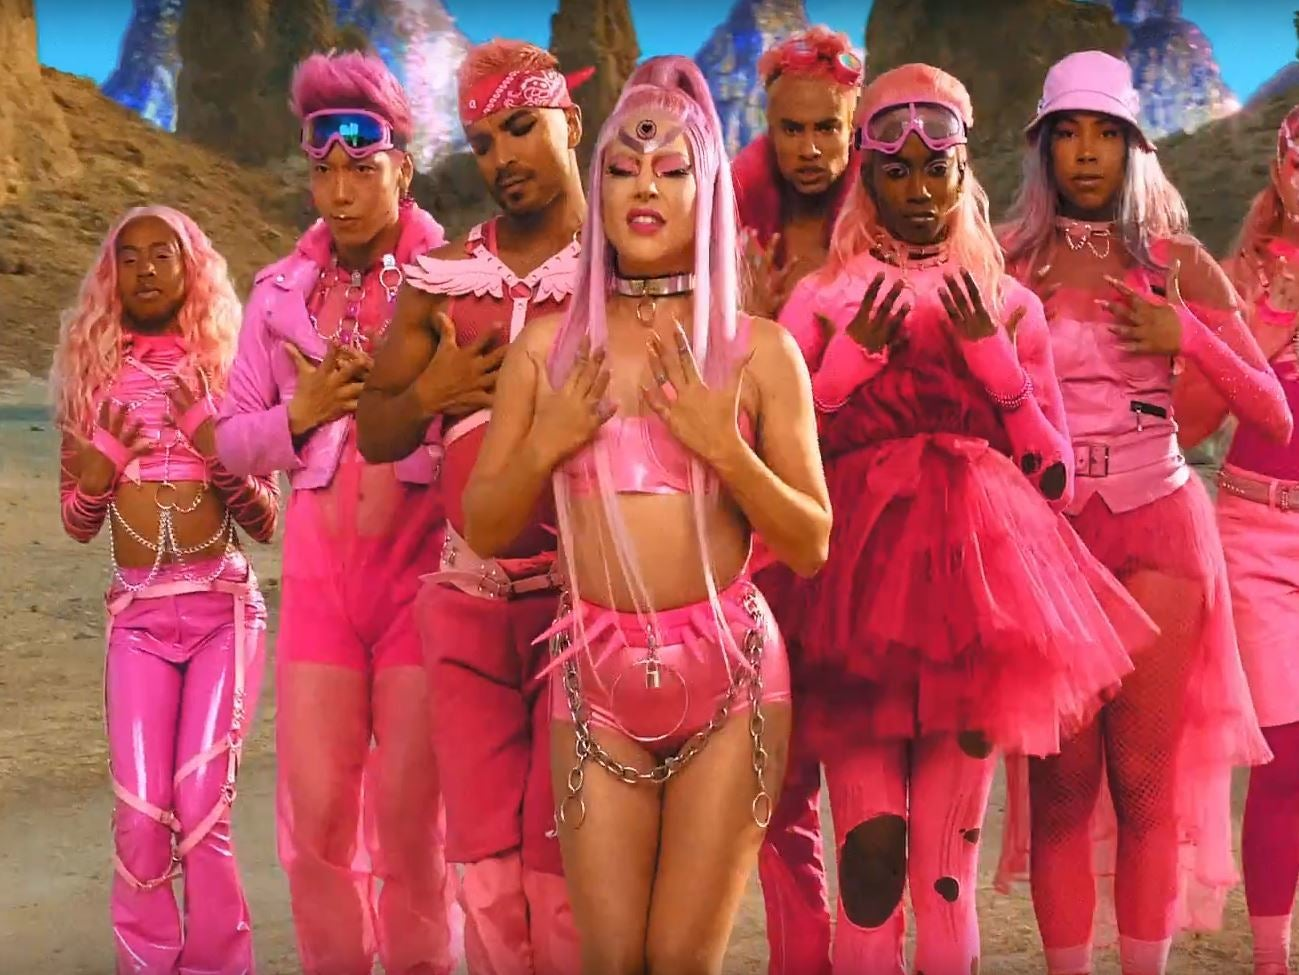 Lady Gaga 'Stupid Love': All the intergalactic fashion looks from the new music video